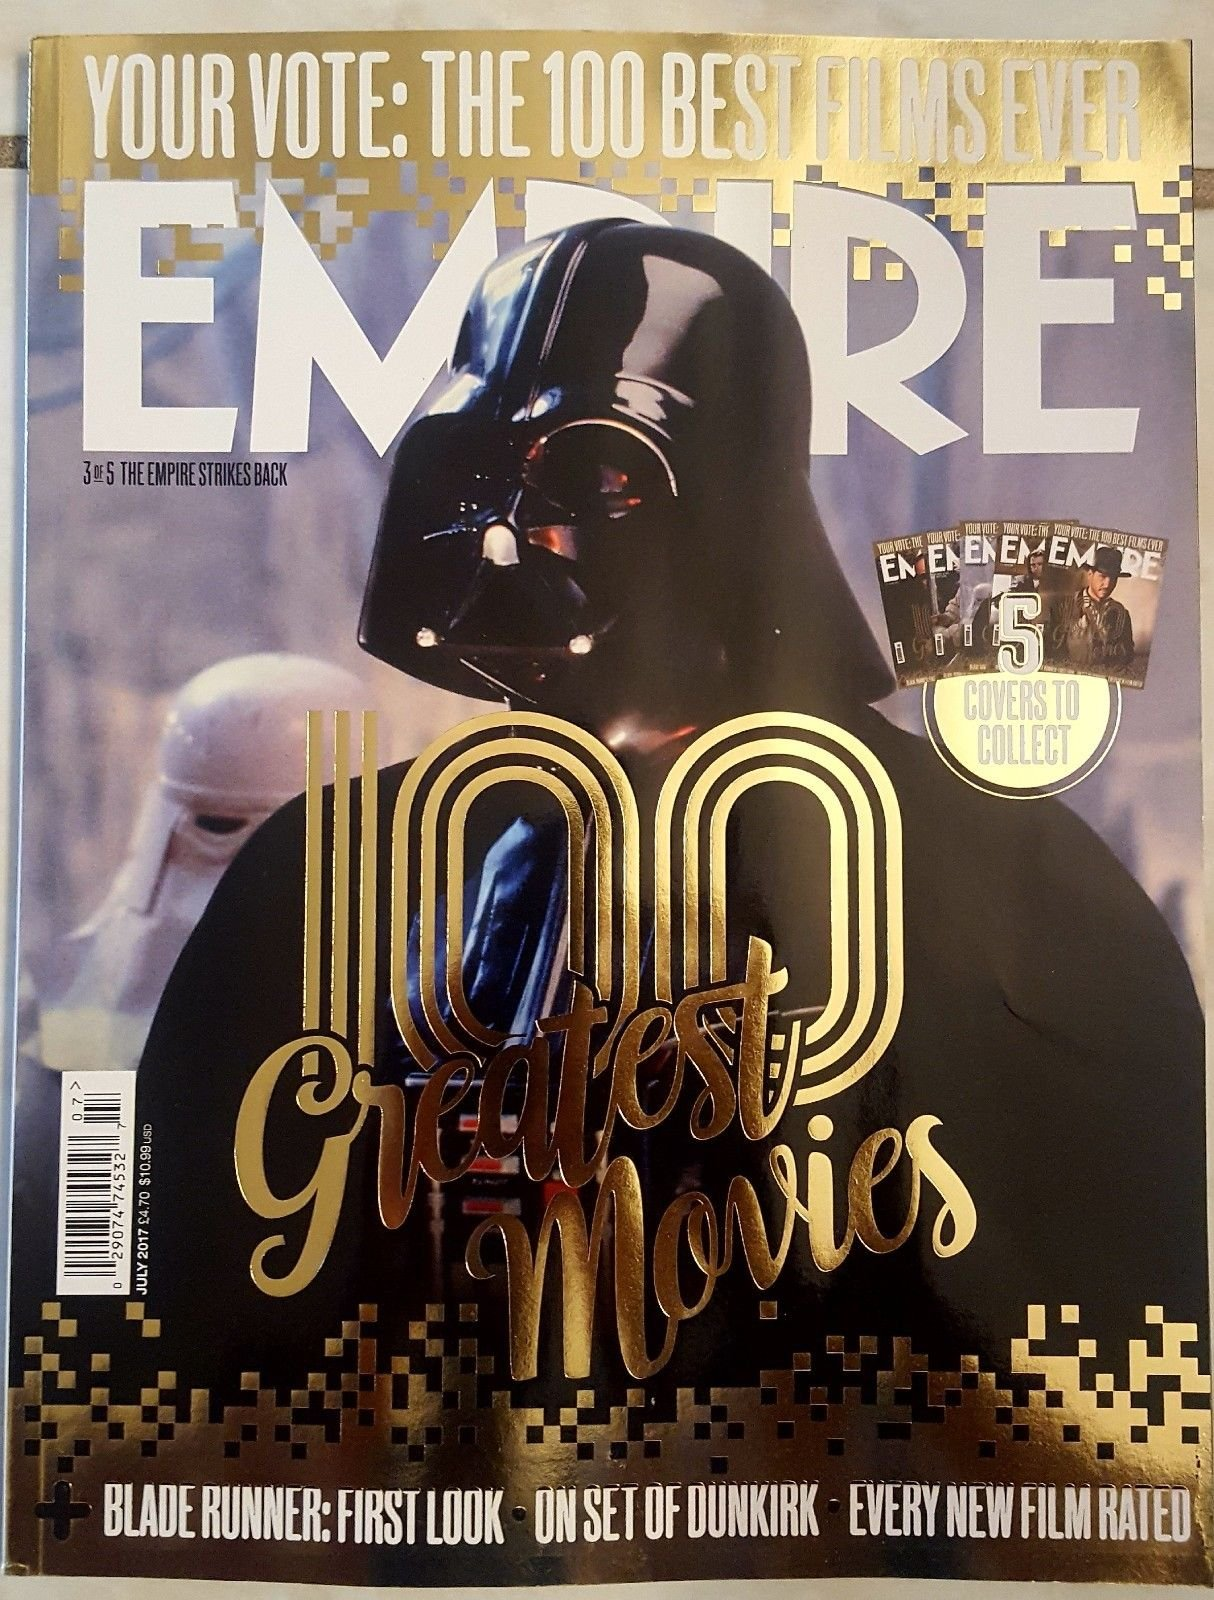 """Download EMPIRE MAGAZINE UK JULY 2017 """"100 GREATEST MOVIES"""" THE EMPIRE STRIKES BACK (COVER #3), WAR FOR THE PLANET OF THE APES, BLADE RUNNER: FIRST LOOK, ON SET OF DUNKIRK, EVERY NEW FILM RATED pdf epub"""